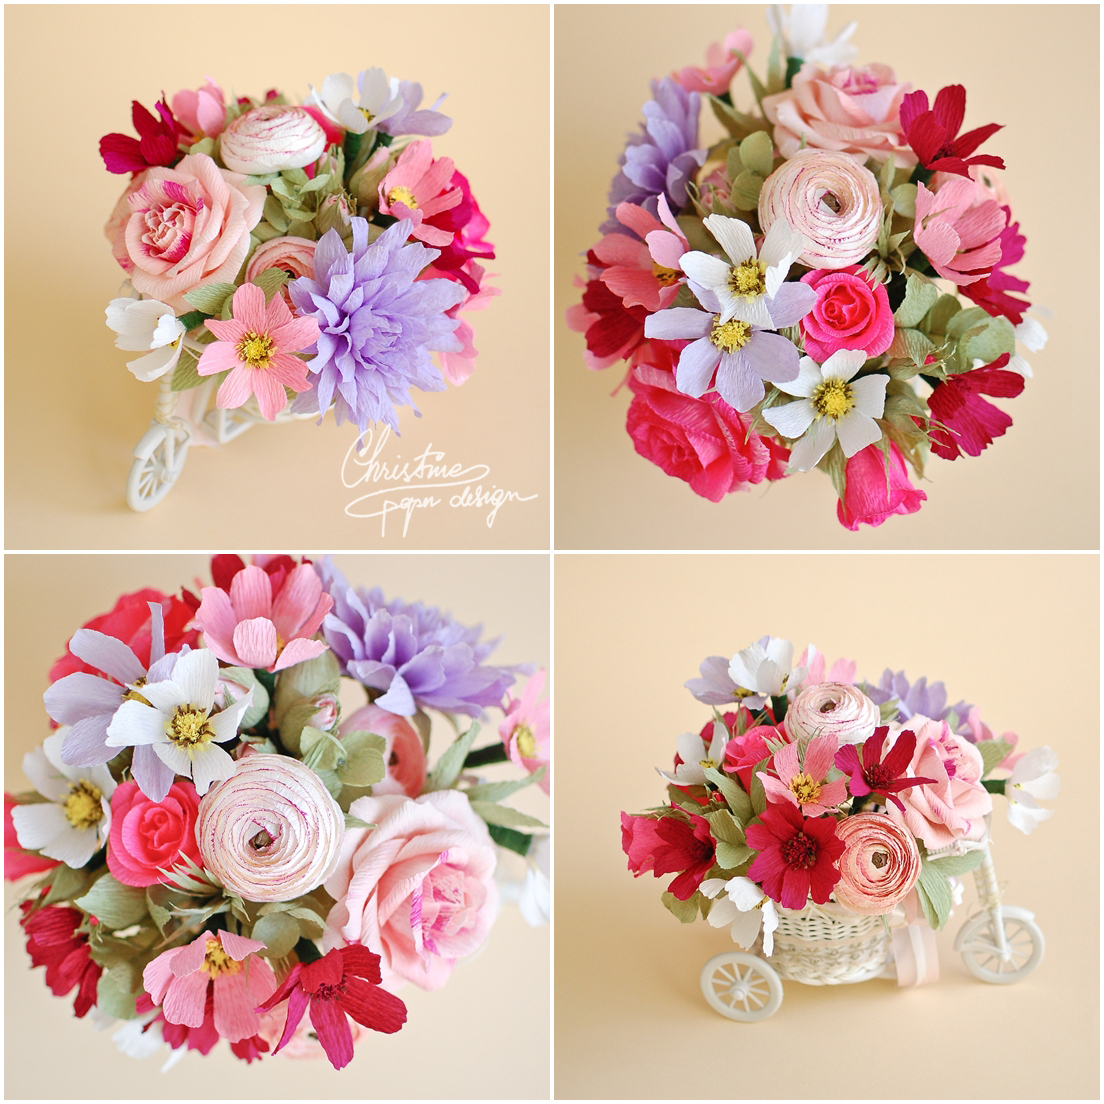 11Christine paper design - paper flowers2